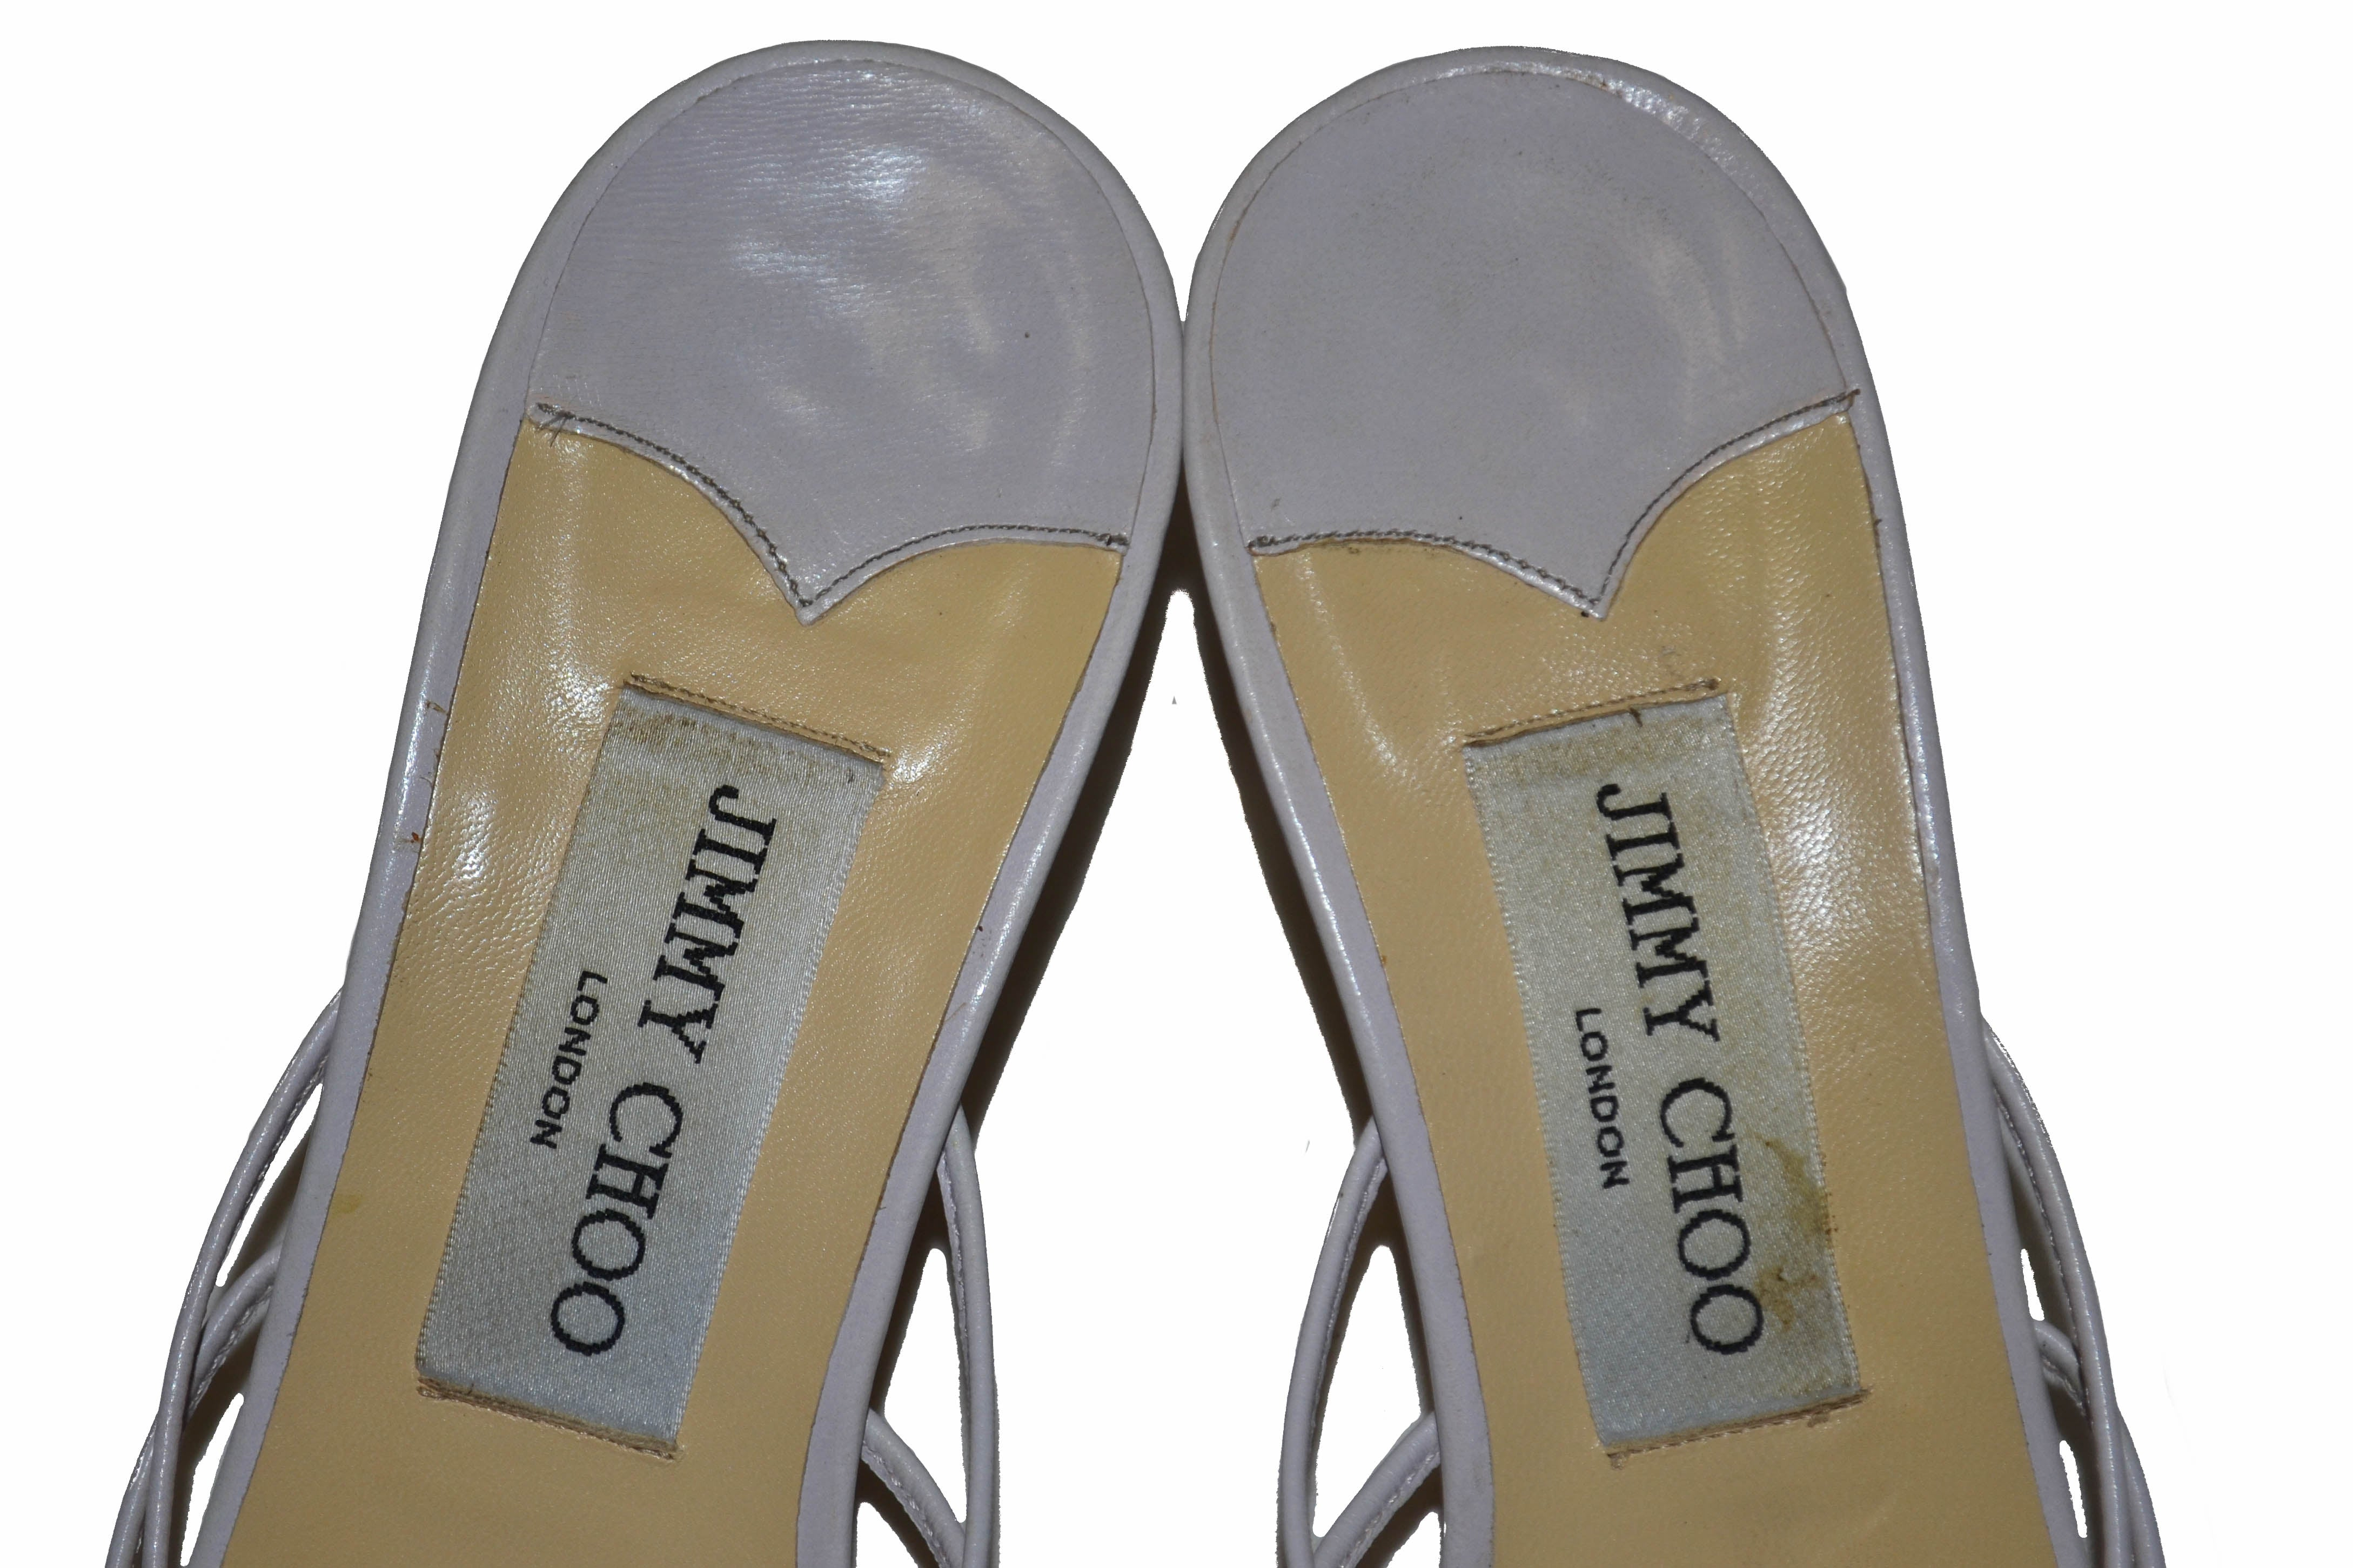 Authentic Jimmy Choo White Leather Sandal Size 37